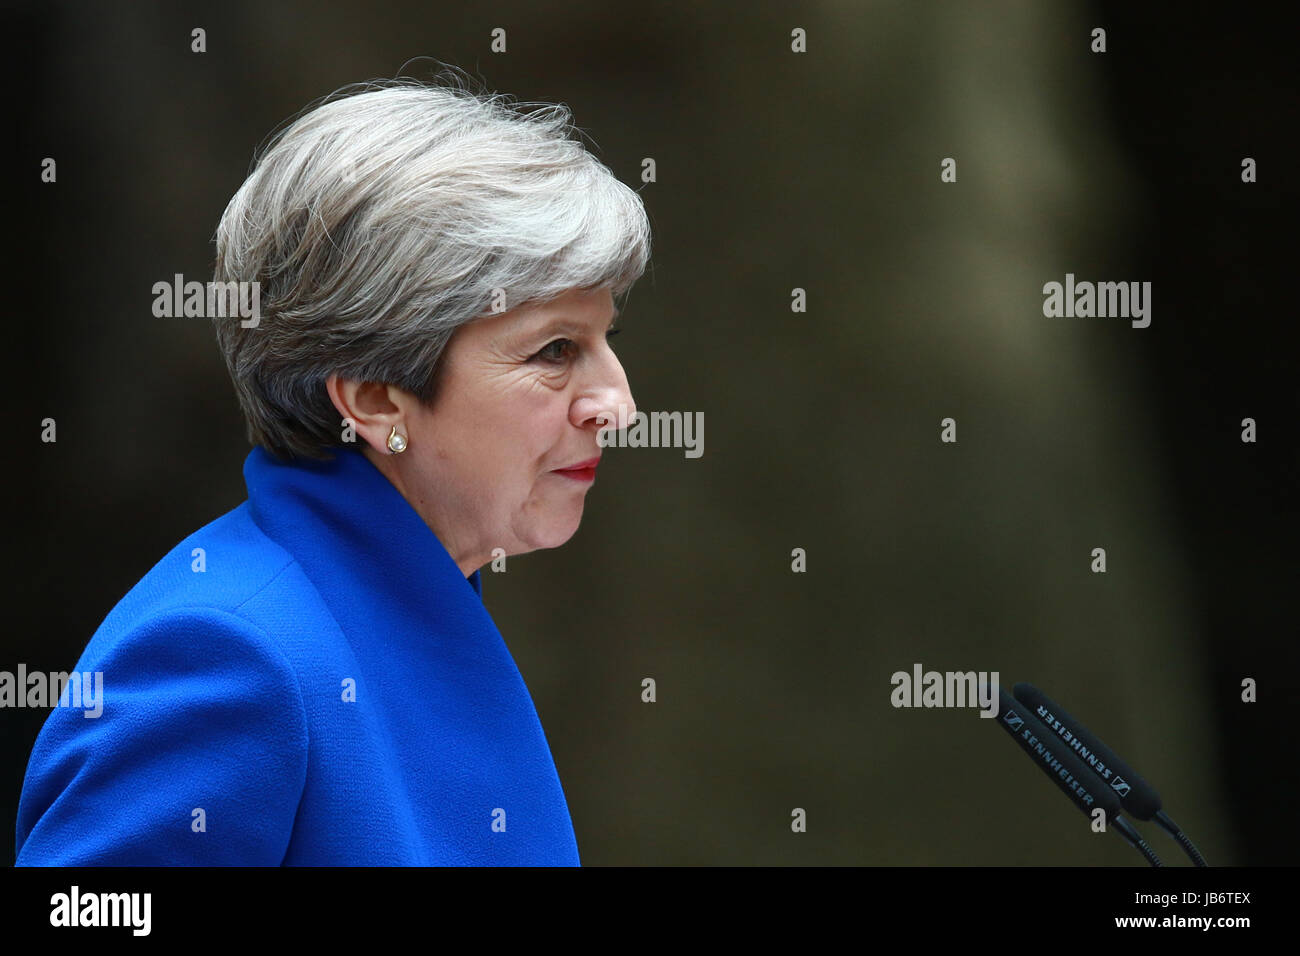 London, UK. 09th June, 2017. Theresa May, still the Prime Minster of Great Britain, is watched by husband Philip, - Stock Image